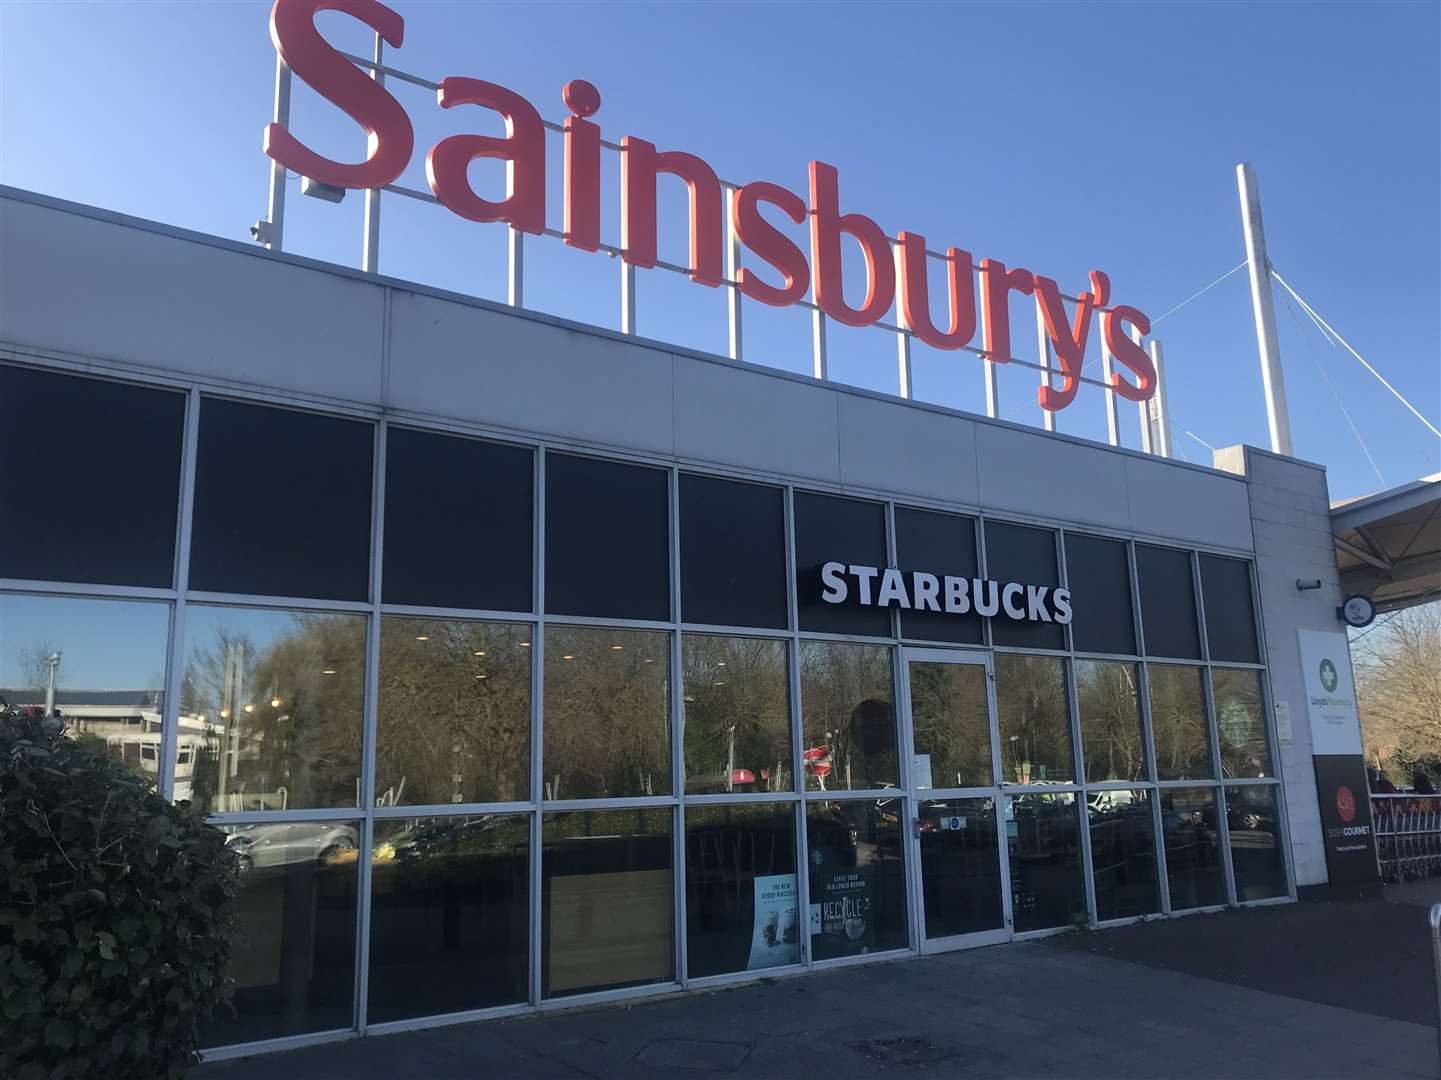 Sainsbury's says it is working hard to ensure customers can find what they need